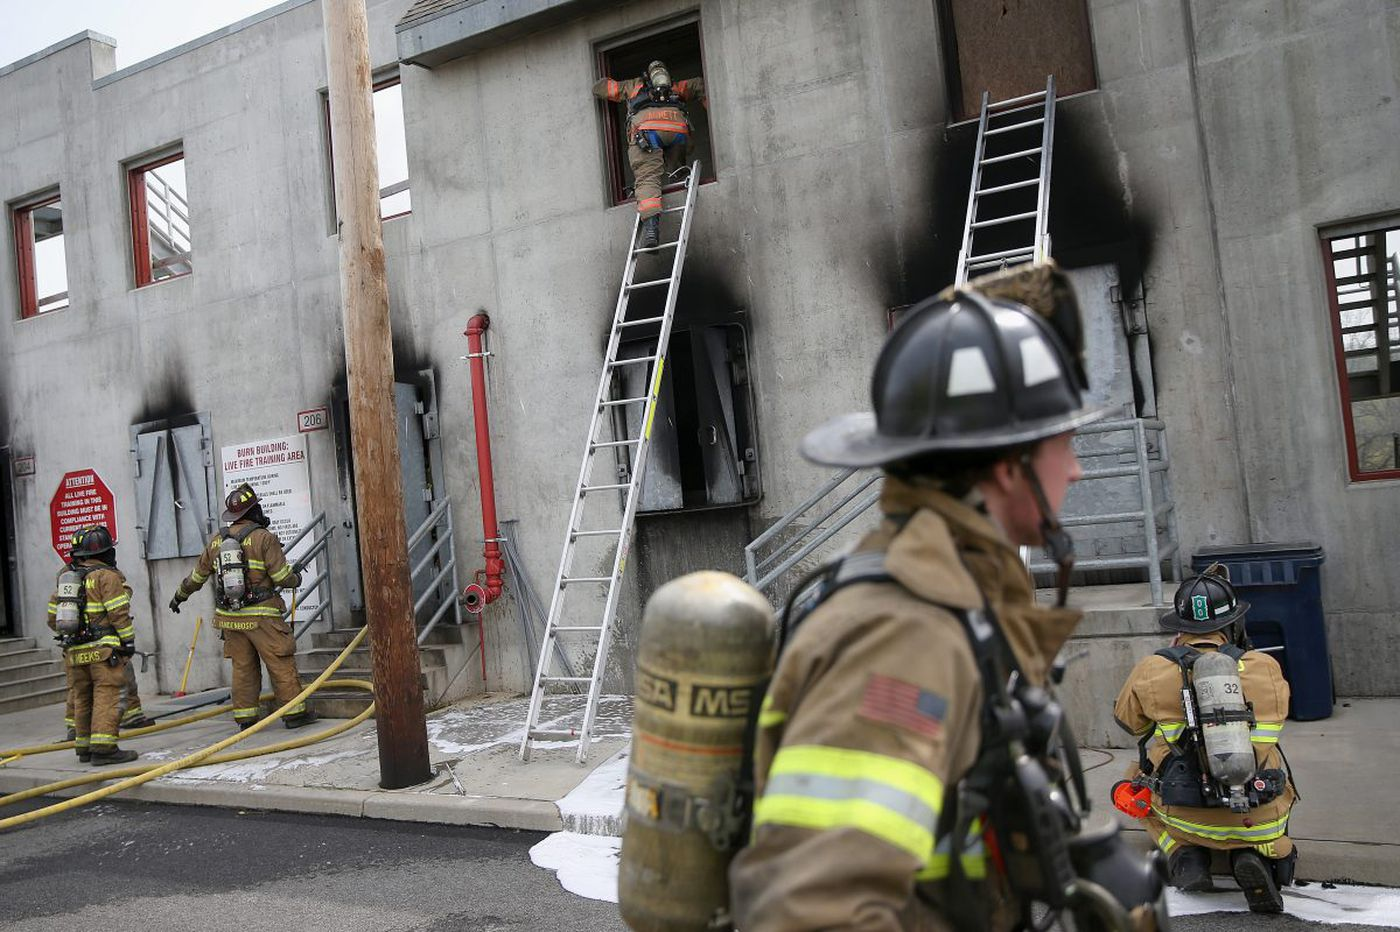 Fire departments, desperate for volunteers, get creative